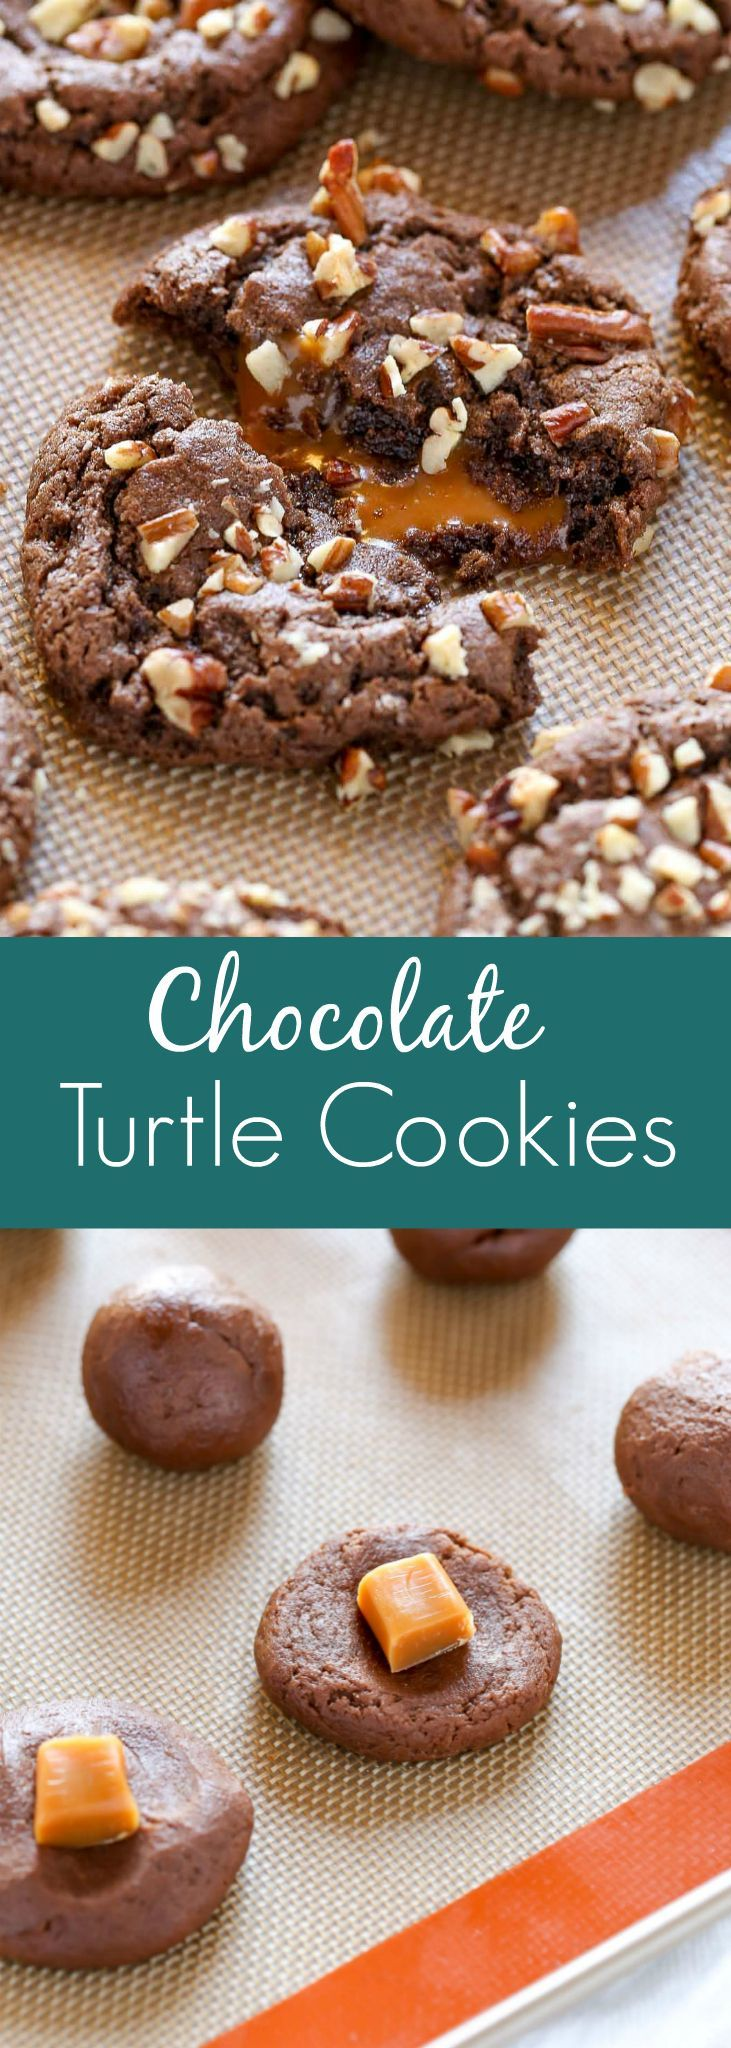 A recipe for easy chocolate cookies stuffed with caramel and coated in chopped pecans. These Chocolate Turtle Cookies are the ultimate dessert!